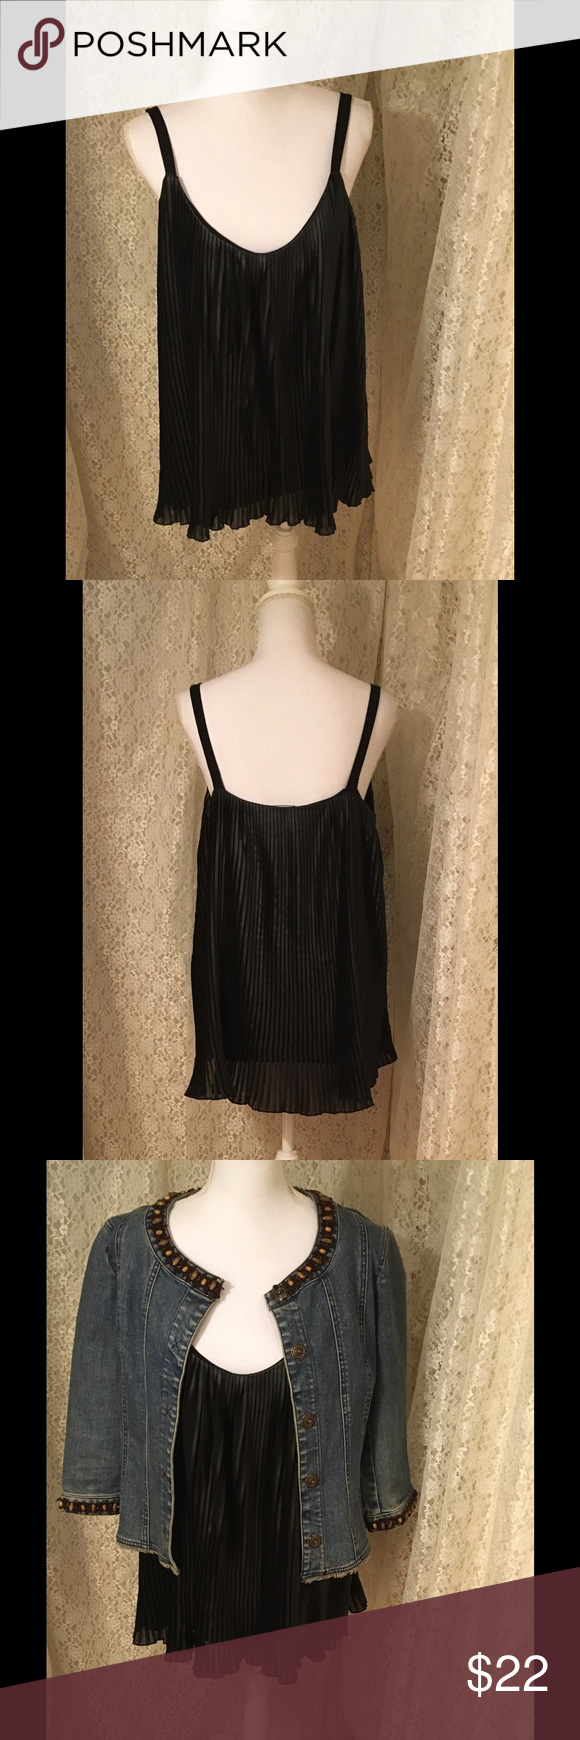 "Black Sleeves Top By Ana Never been worn Back sleeveless top chiffon fully lined 100% polyester, body inner 95% viscose 5% spandex 20"" from armpit to armpit and 25"" length ana  Tops"